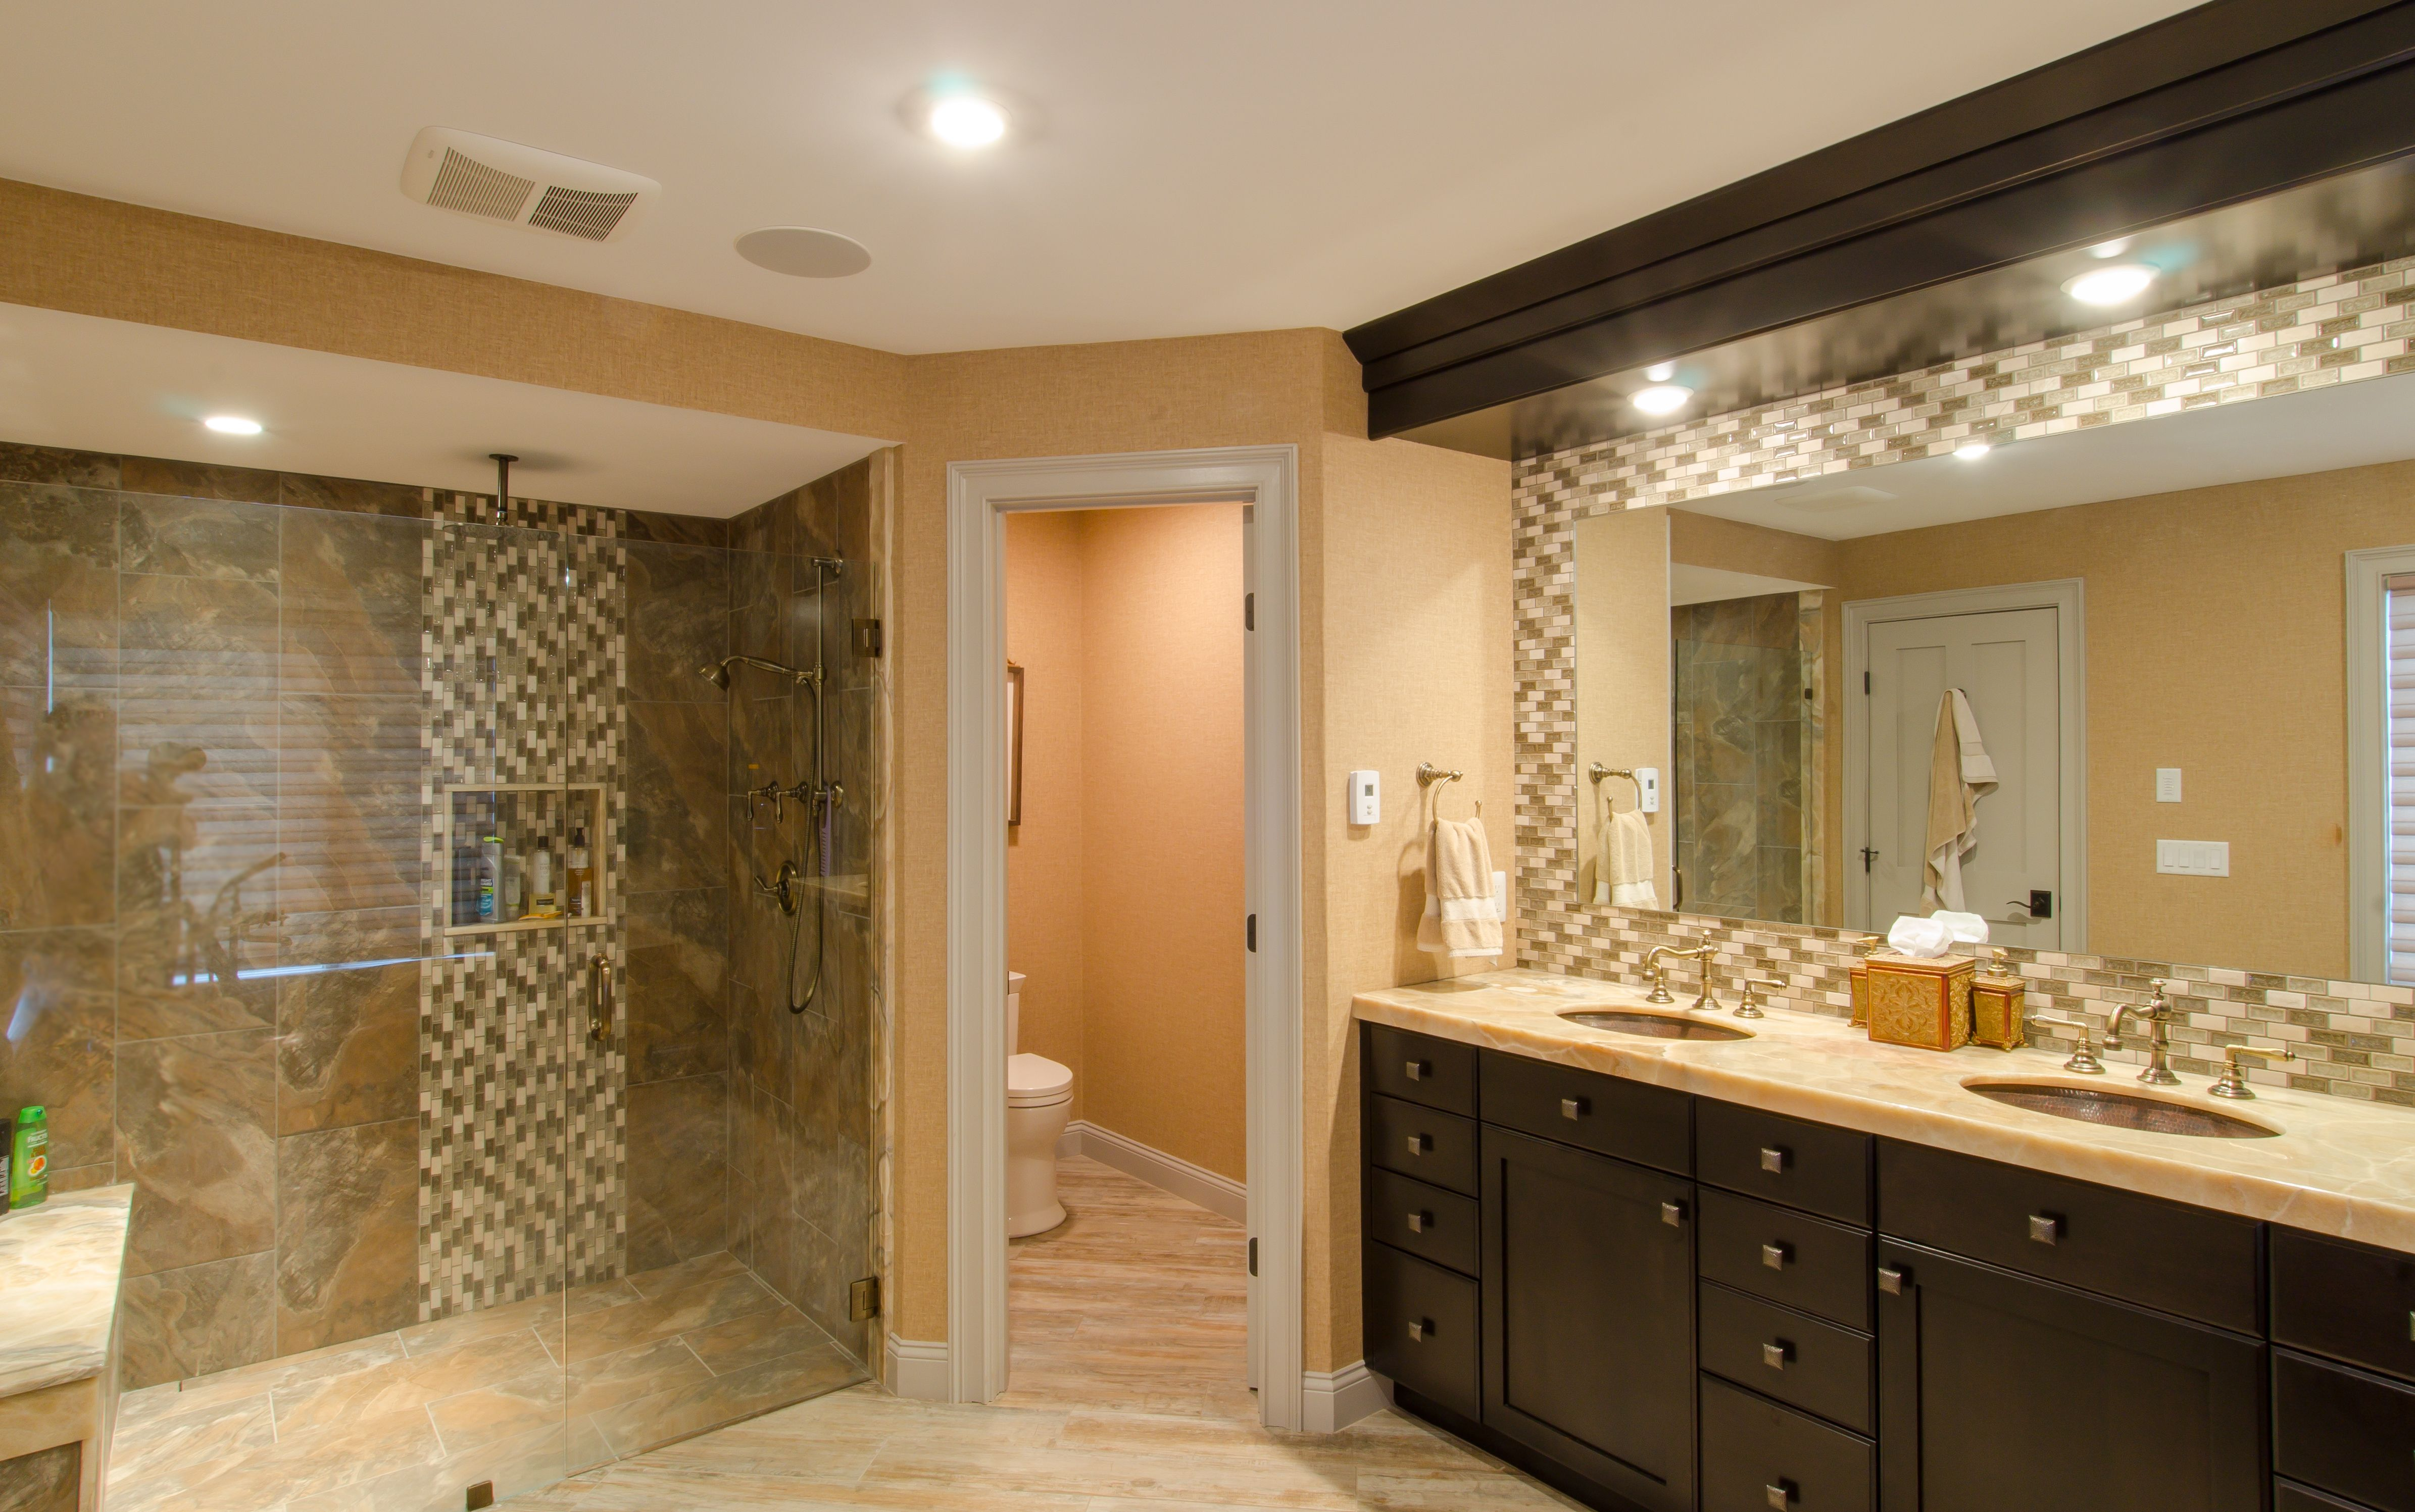 Admirable Cherry Wood Bathroom Stained Cherry Wood Vanity With Built Andrewgaddart Wooden Chair Designs For Living Room Andrewgaddartcom